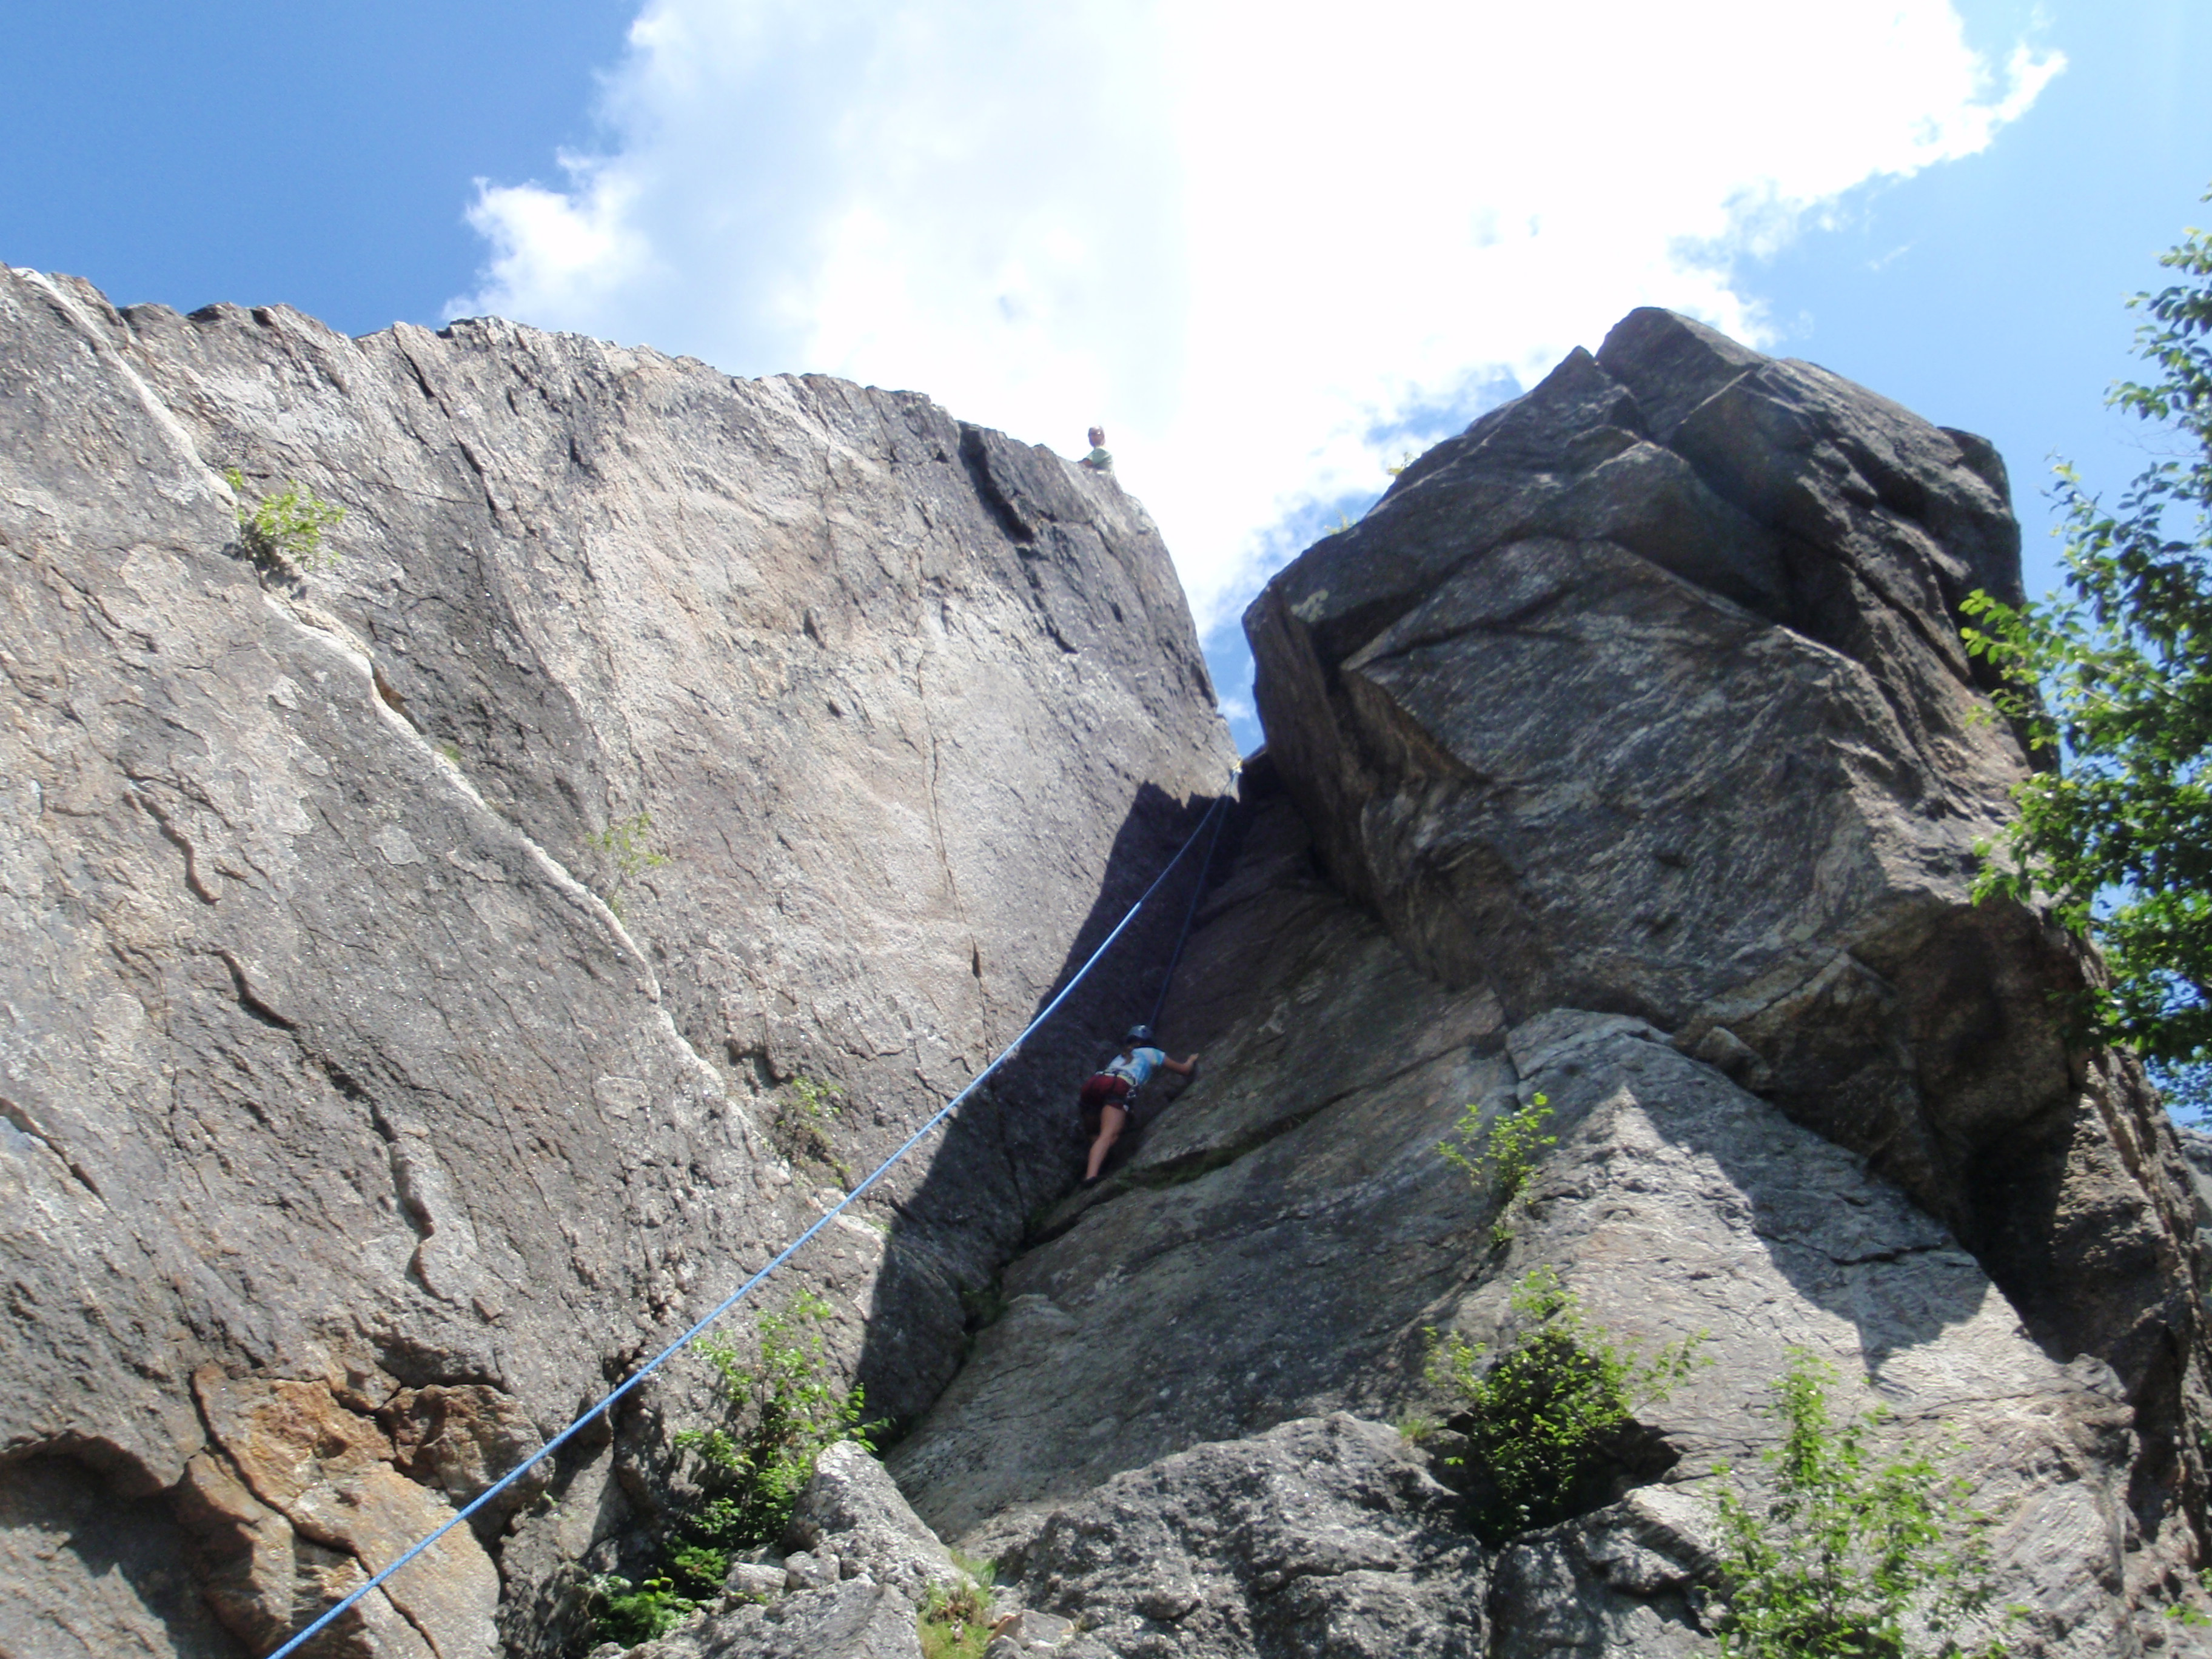 """The 2nd climb we did is the appropriately named """"Chimney"""", rated 5.6"""